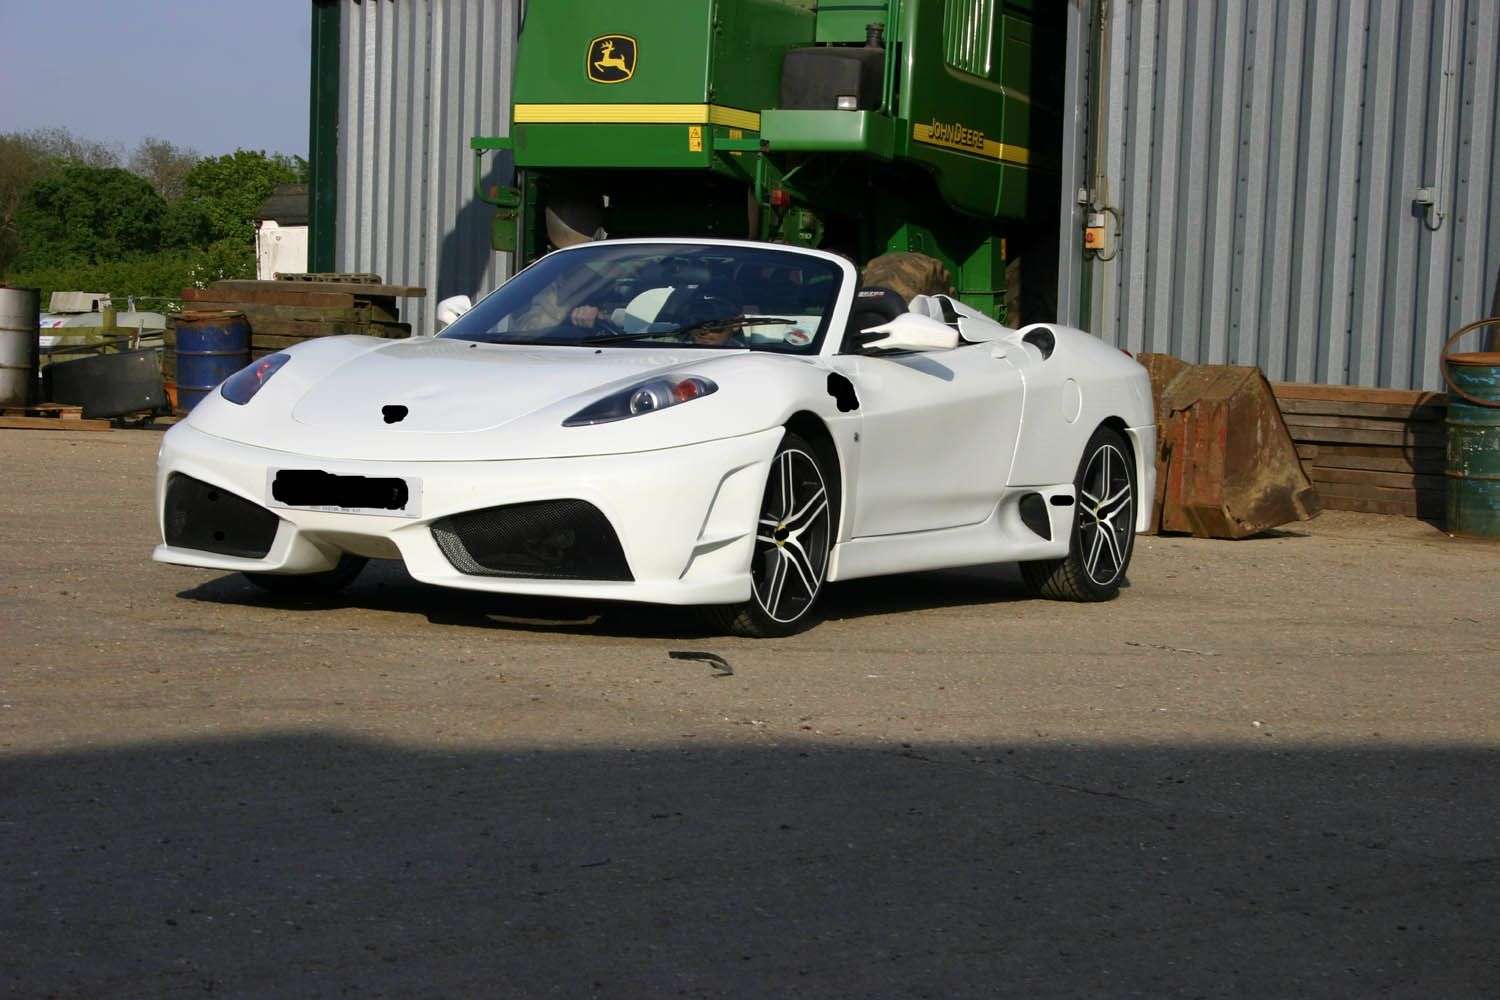 White Ferrari F430 Scudo replica based on Toyota MR2 roadster built